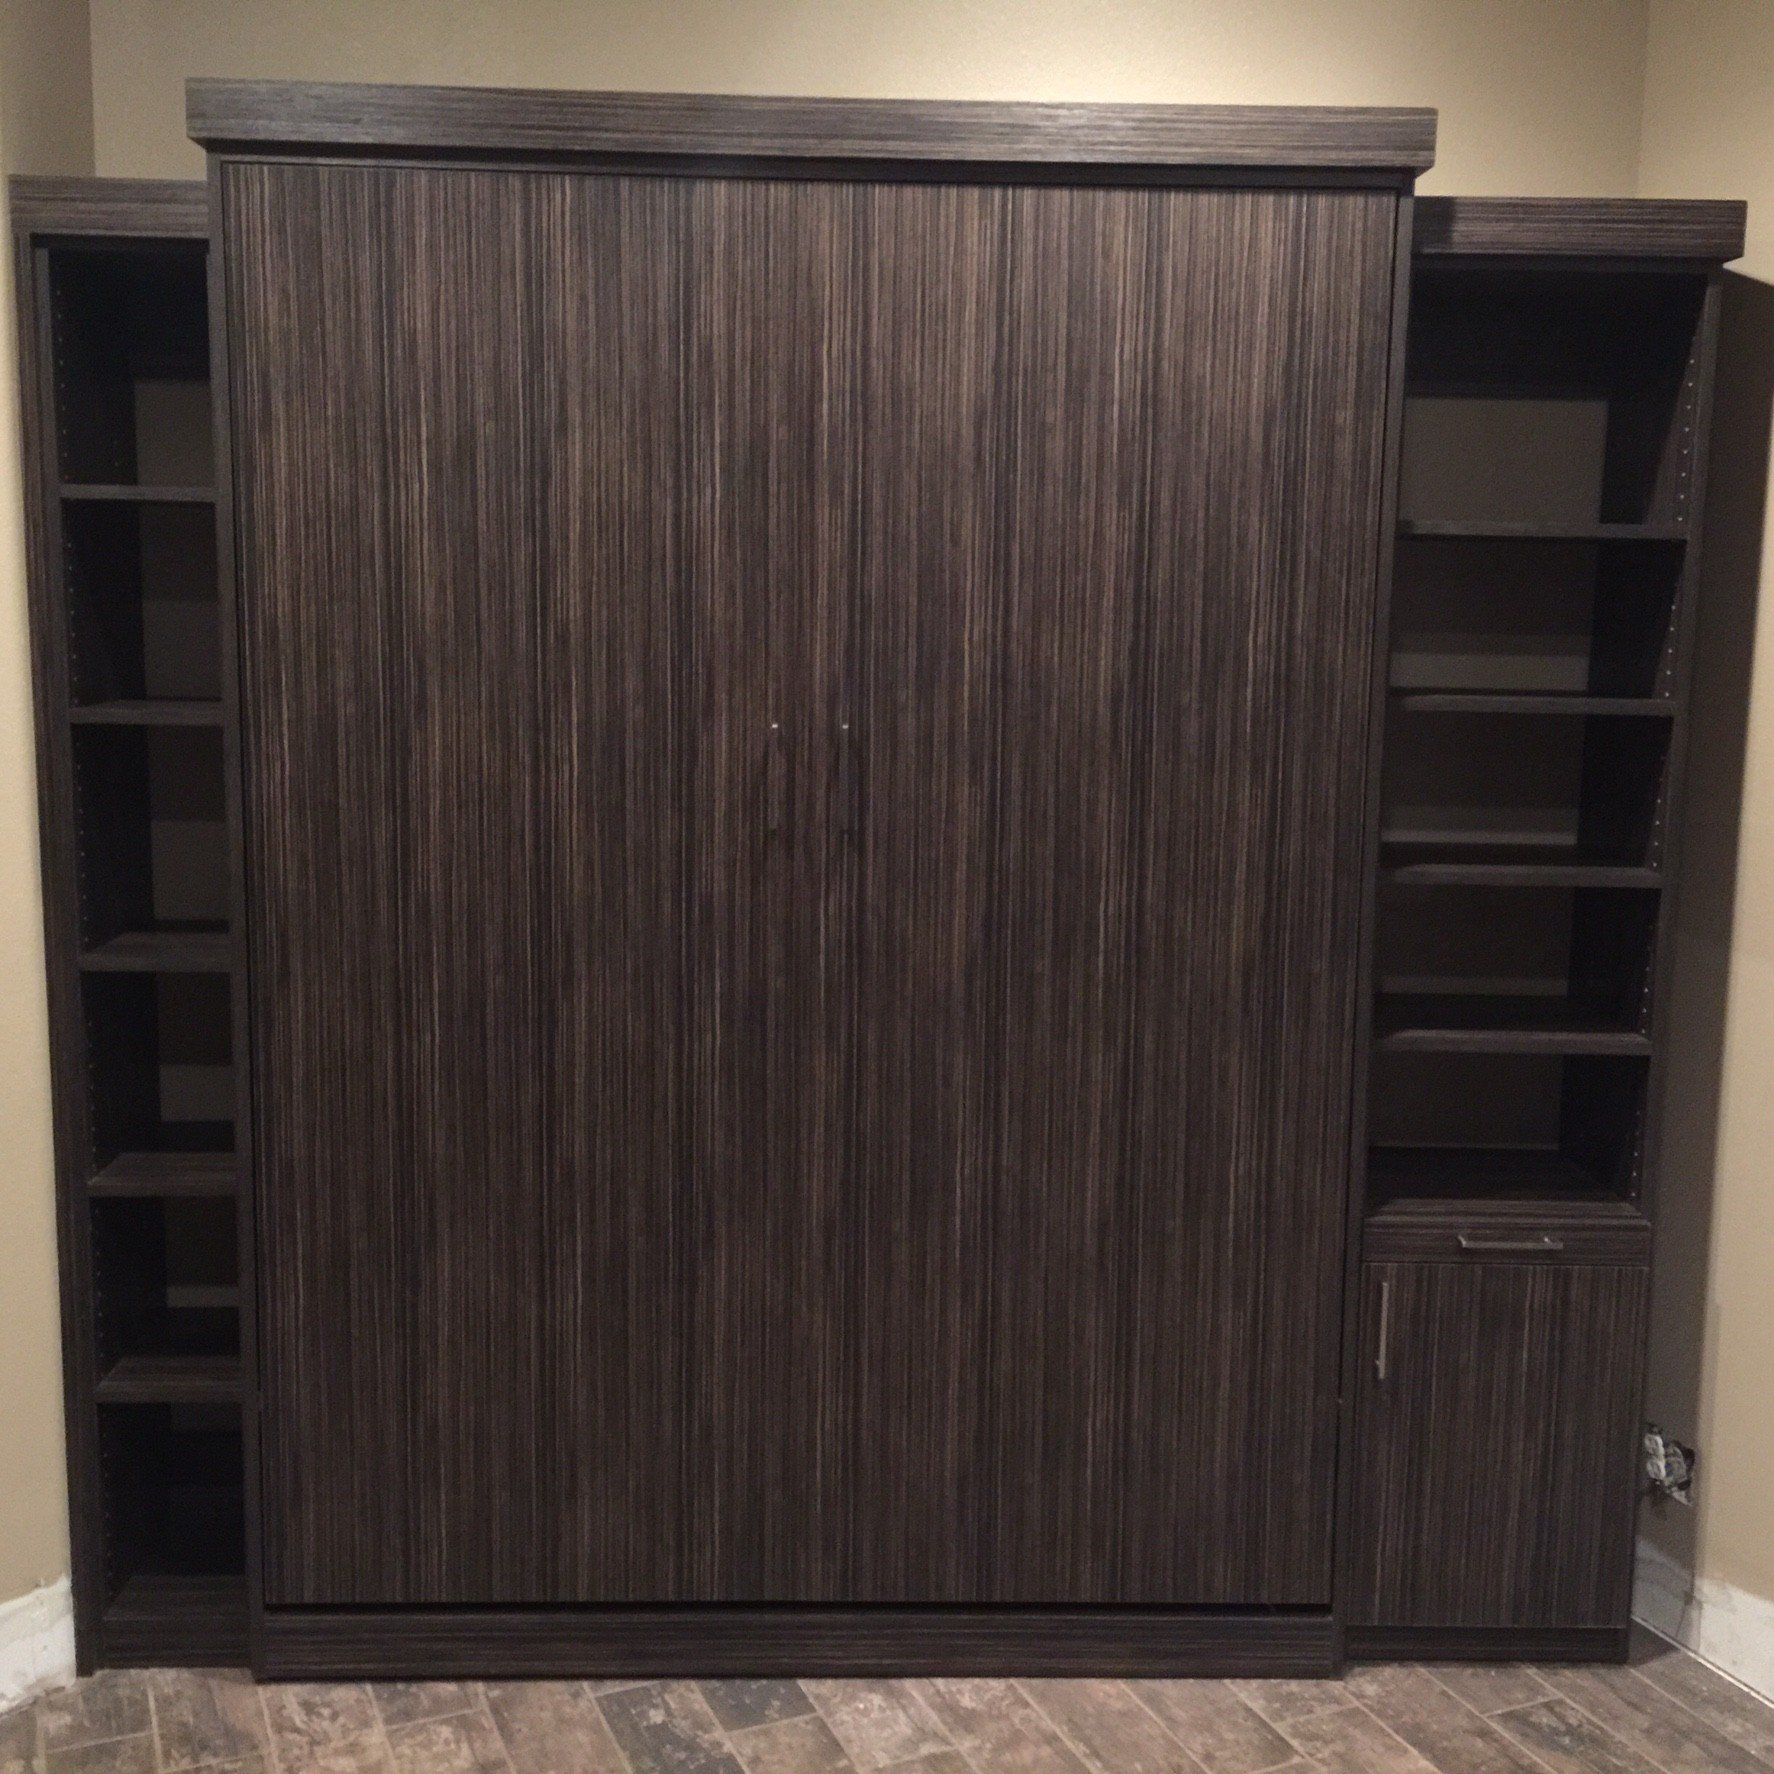 Textured Murphy Bed with side units